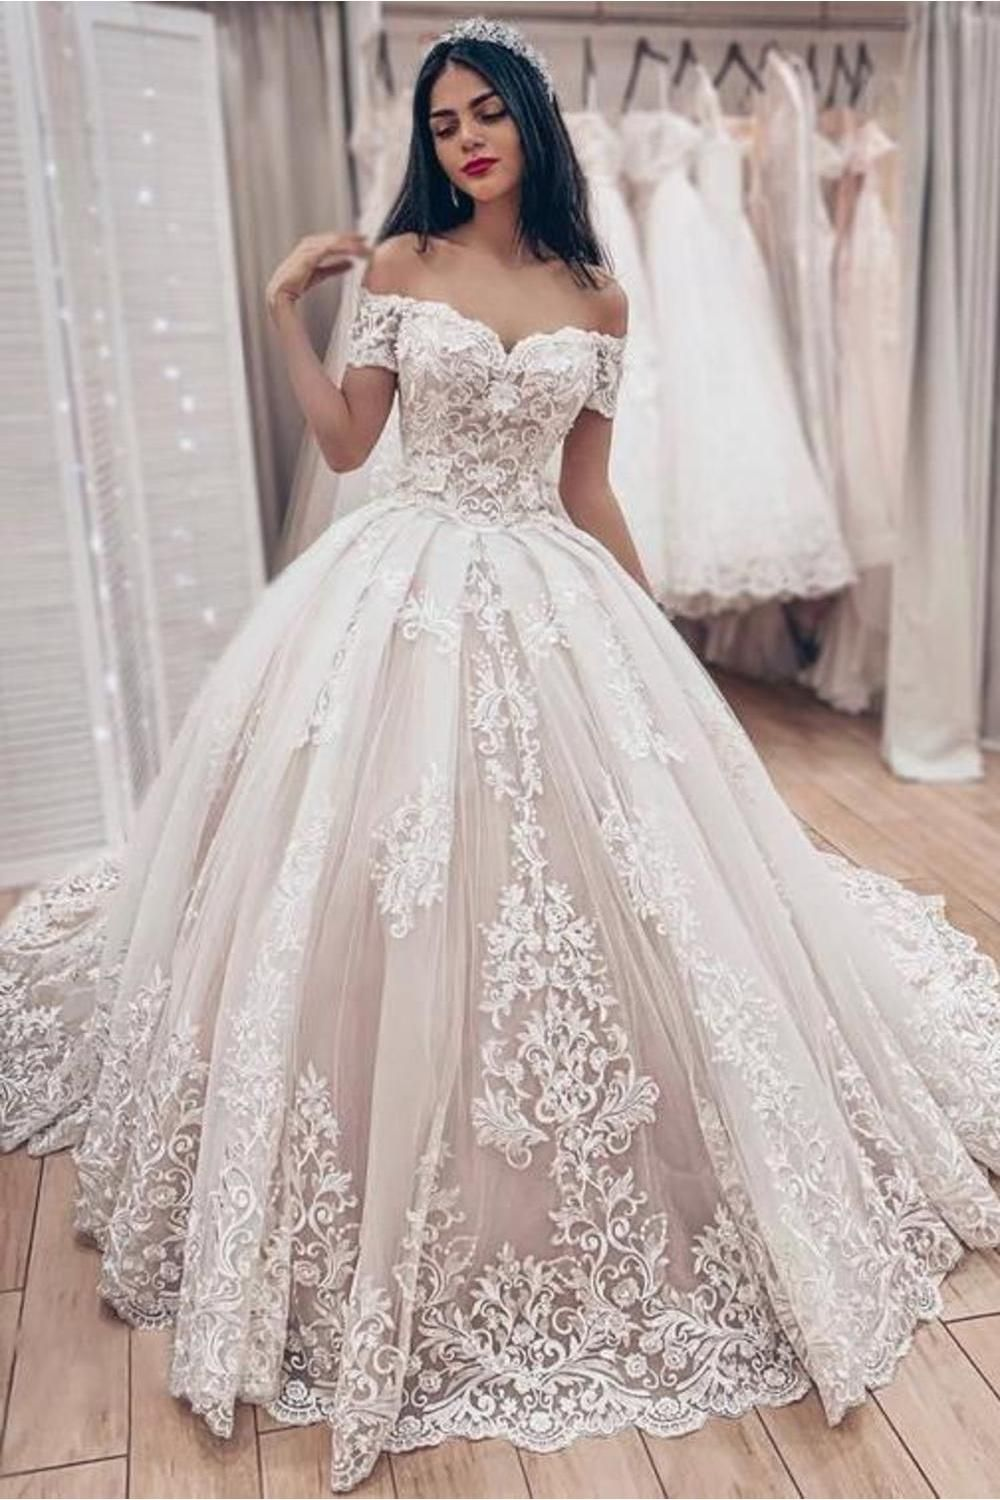 5 Things to Consider Before Buying A Bridal Dress?